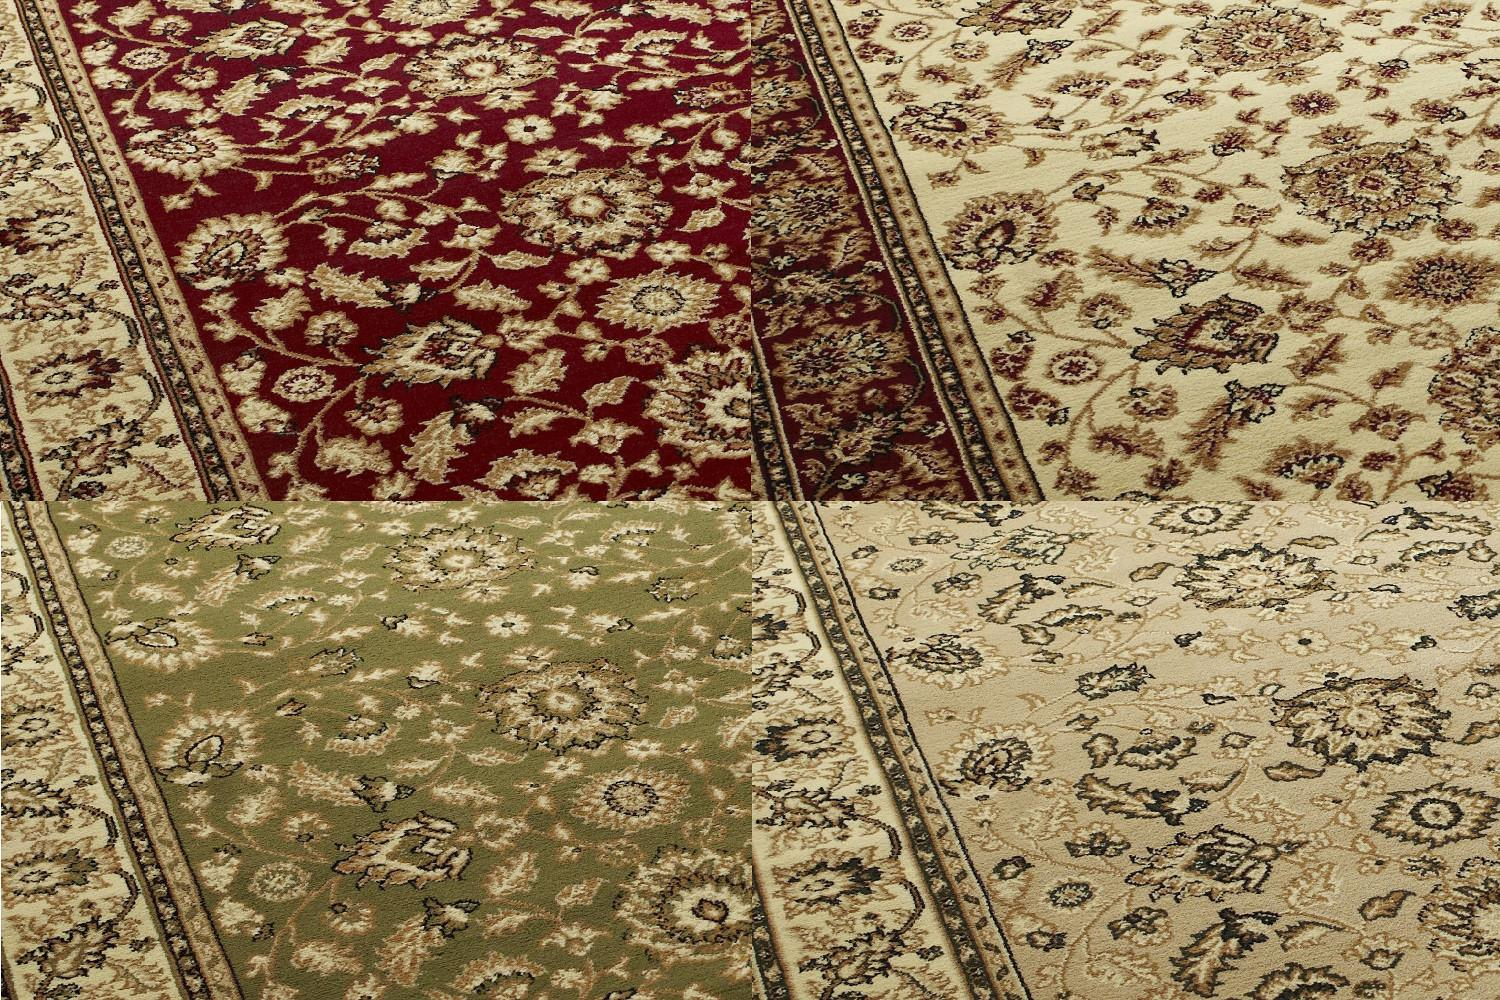 Heritage Traditional Repetitive Pattern Rug Wool Look Pile